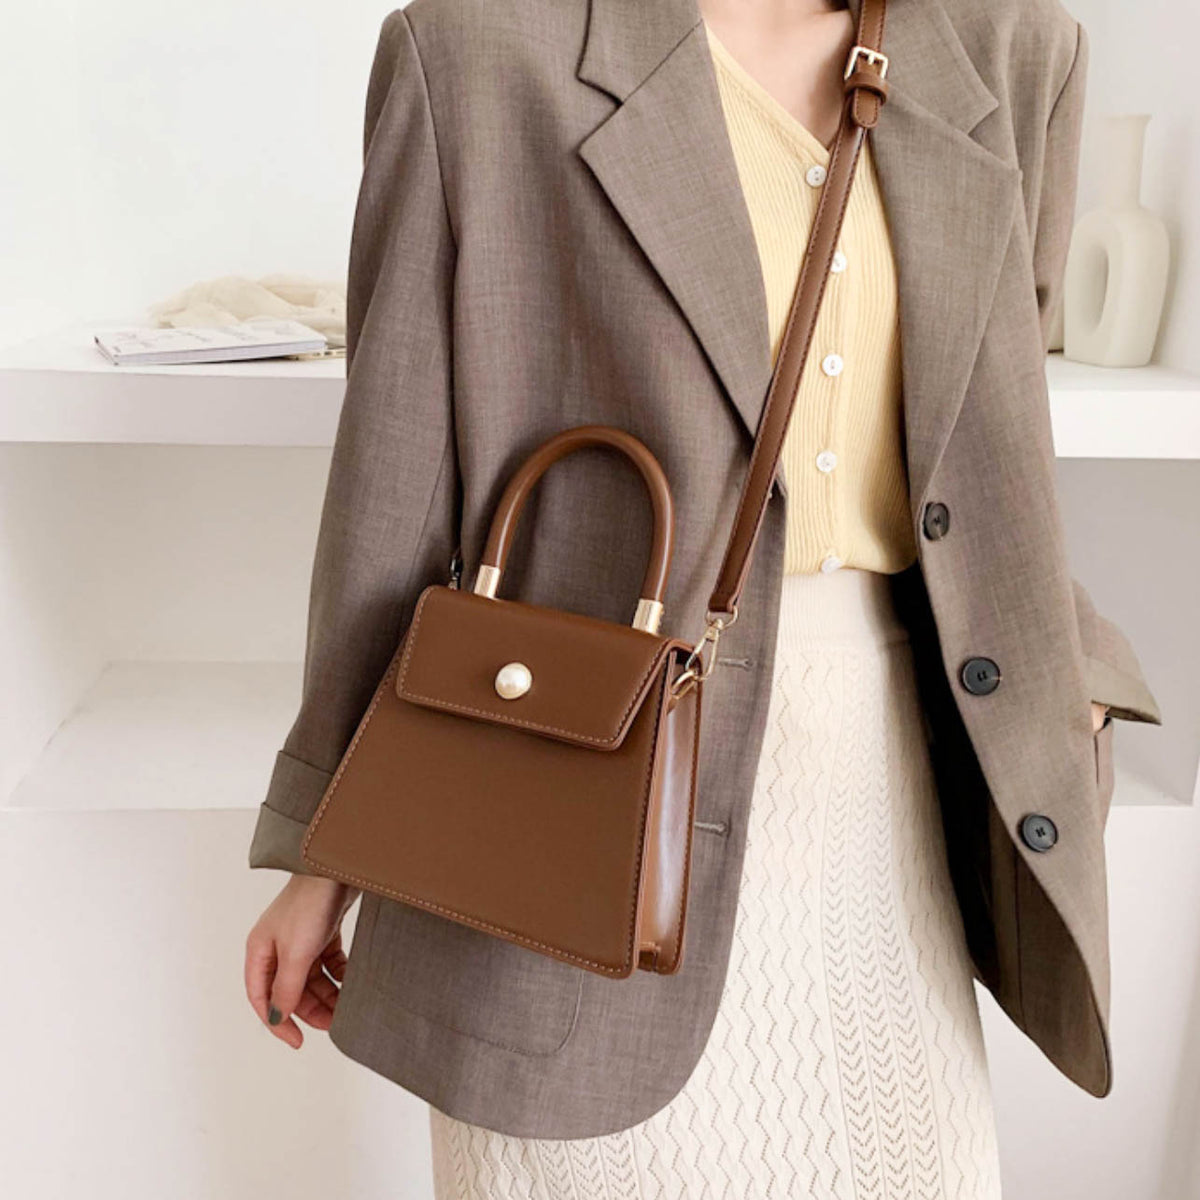 Estelle Vintage Bag - Brown